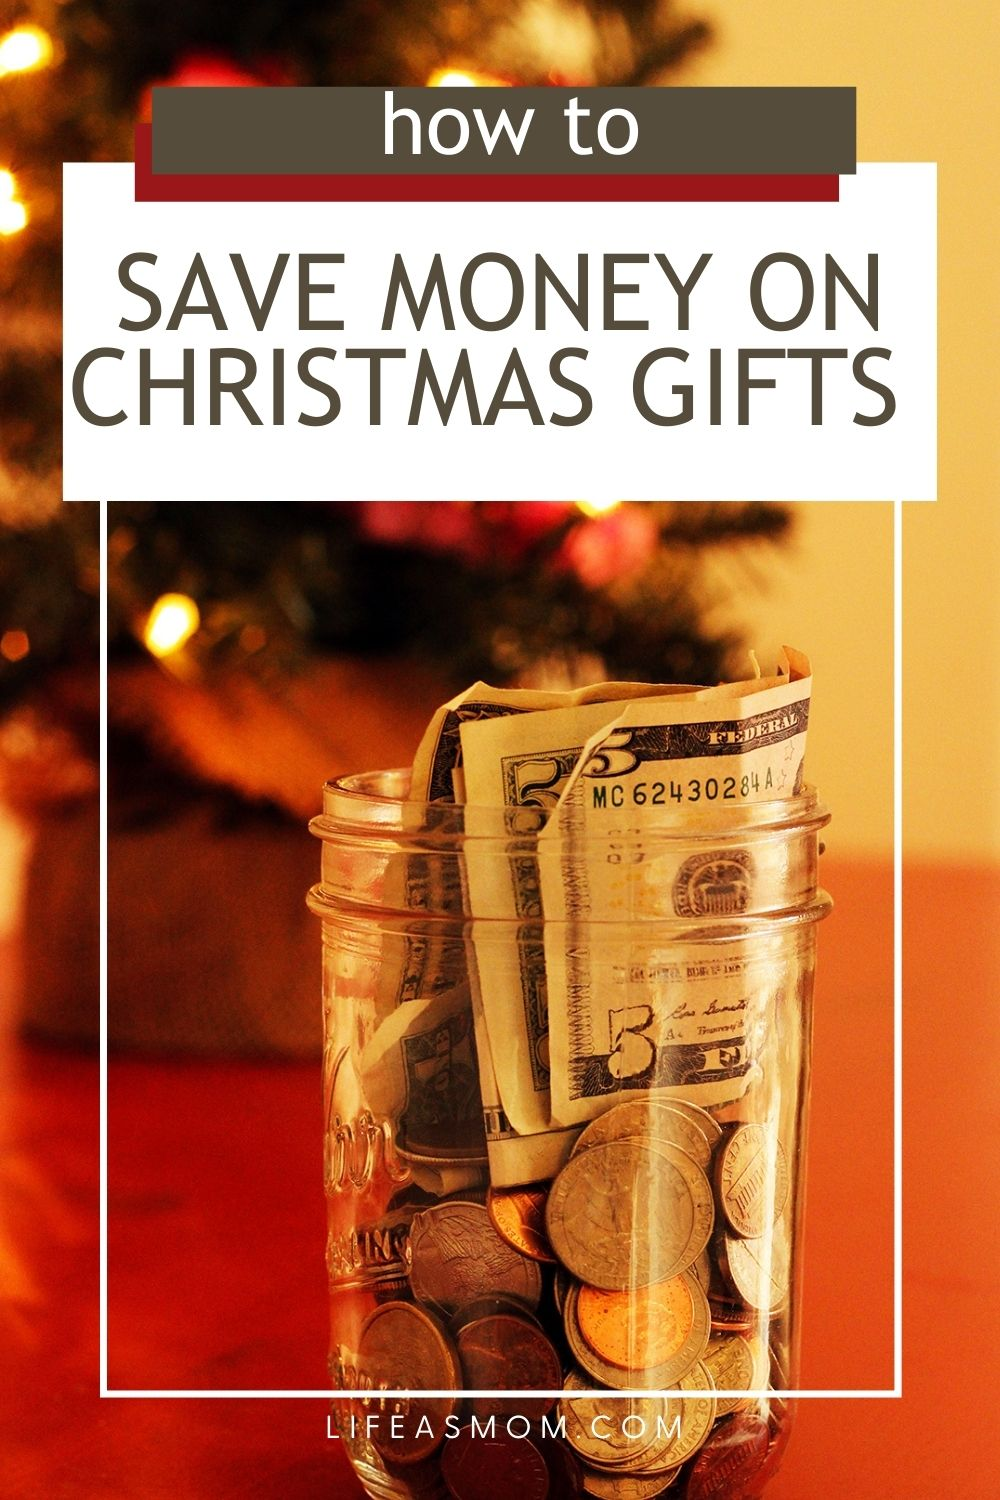 How to Save Money on Christmas Gifts written across image of jar of money by Christmas tree